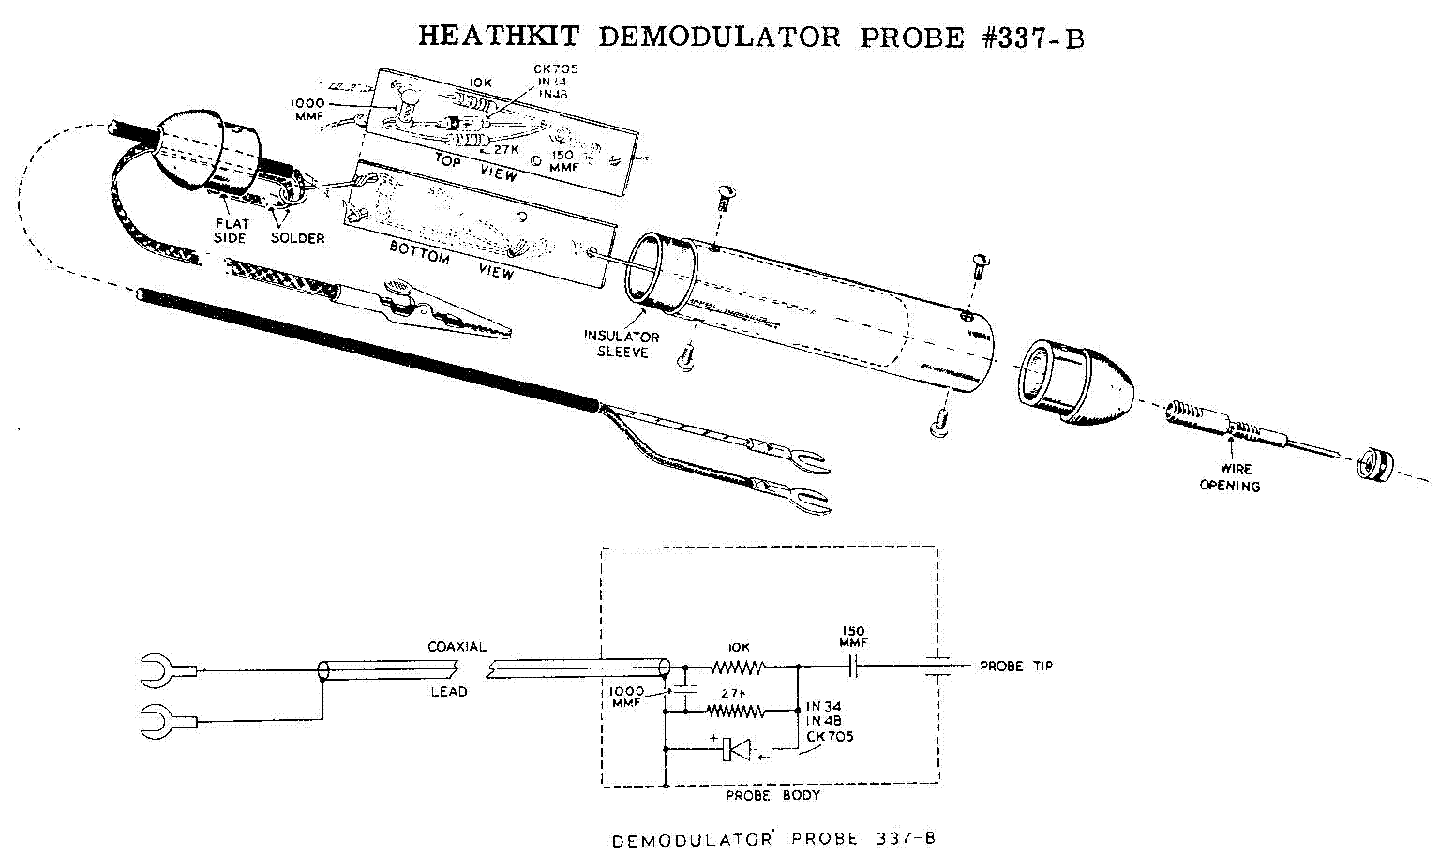 HEATHKIT IO-18 OSCILLOSCOPE SCH. Service Manual download